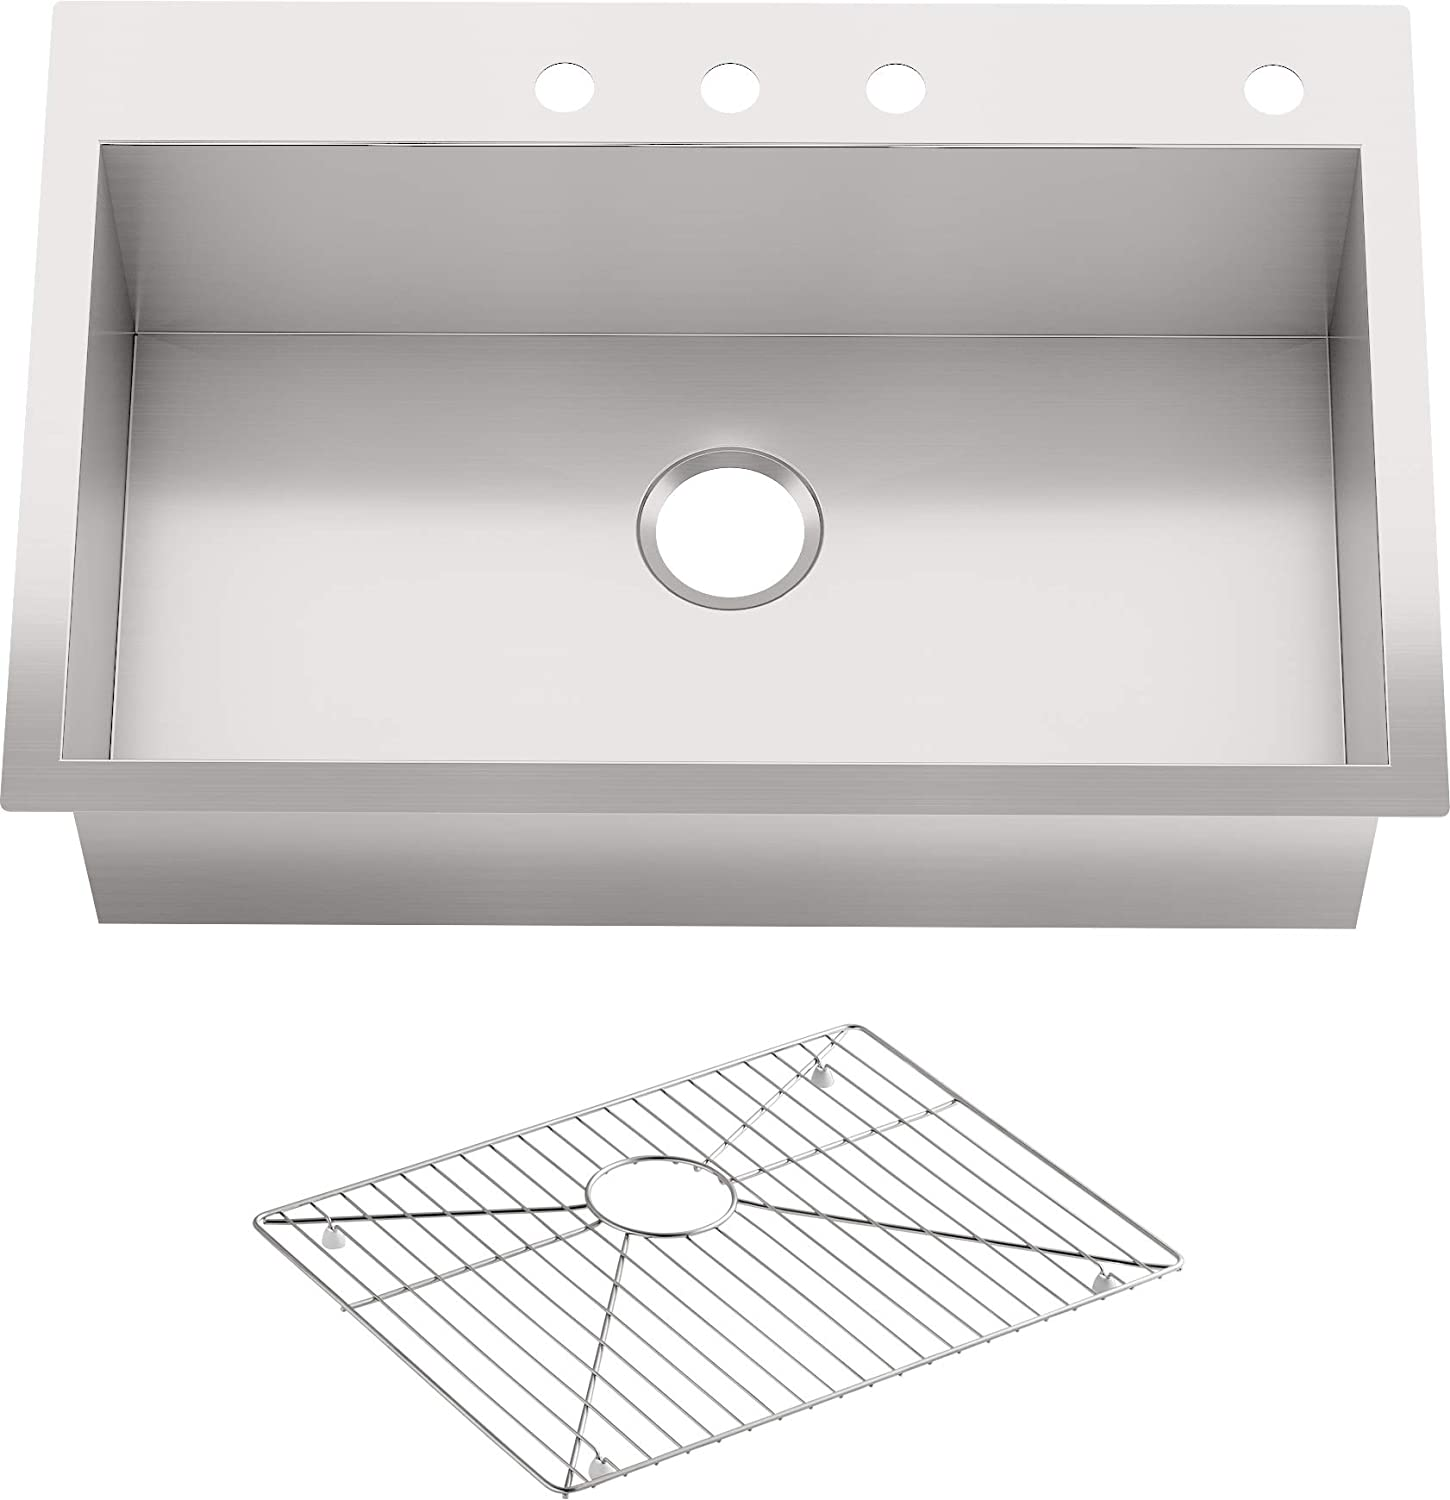 Kohler Vault 33 Single Bowl 18 Gauge Stainless Steel Kitchen Sink With Four Faucet Holes K 3821 4 Na Drop In Or Undermount Installation 9 Inch Bowl Single Bowl Sinks Amazon Com